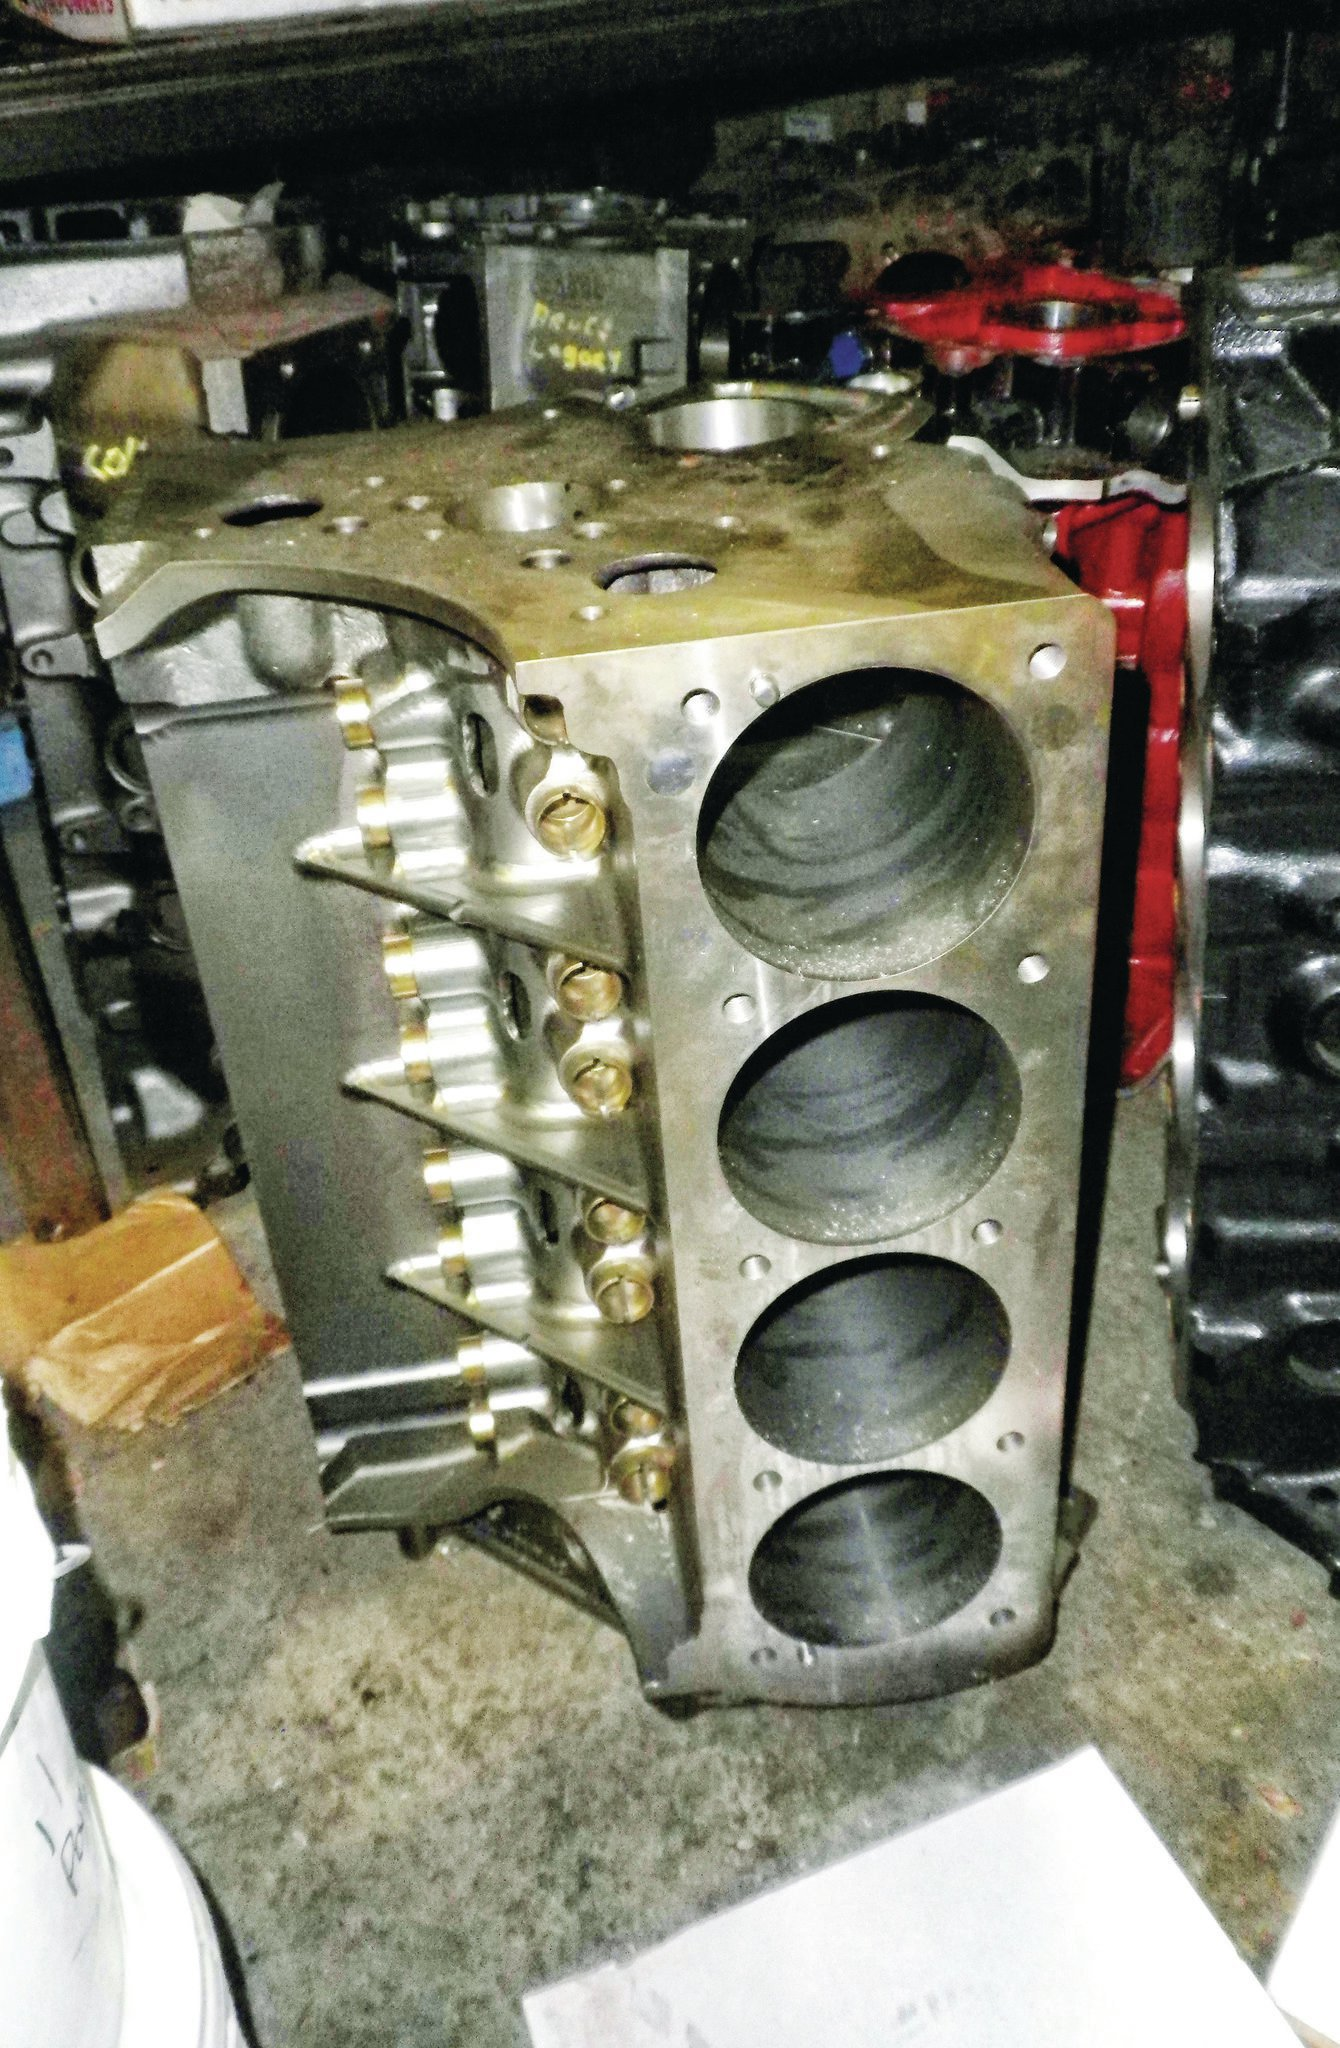 An AllPontiac.com IA II block was used in the build. The bore spacing has been moved from the stock 4.620 inches to a wider 4.685 inches. It is tight, but the move allows for a 4.500-inch bore, something that is not possible in a traditional Pontiac V8. The unmachined blocks are sent from AllPontiac.com to McCarty Racing for finishing to its specifications.